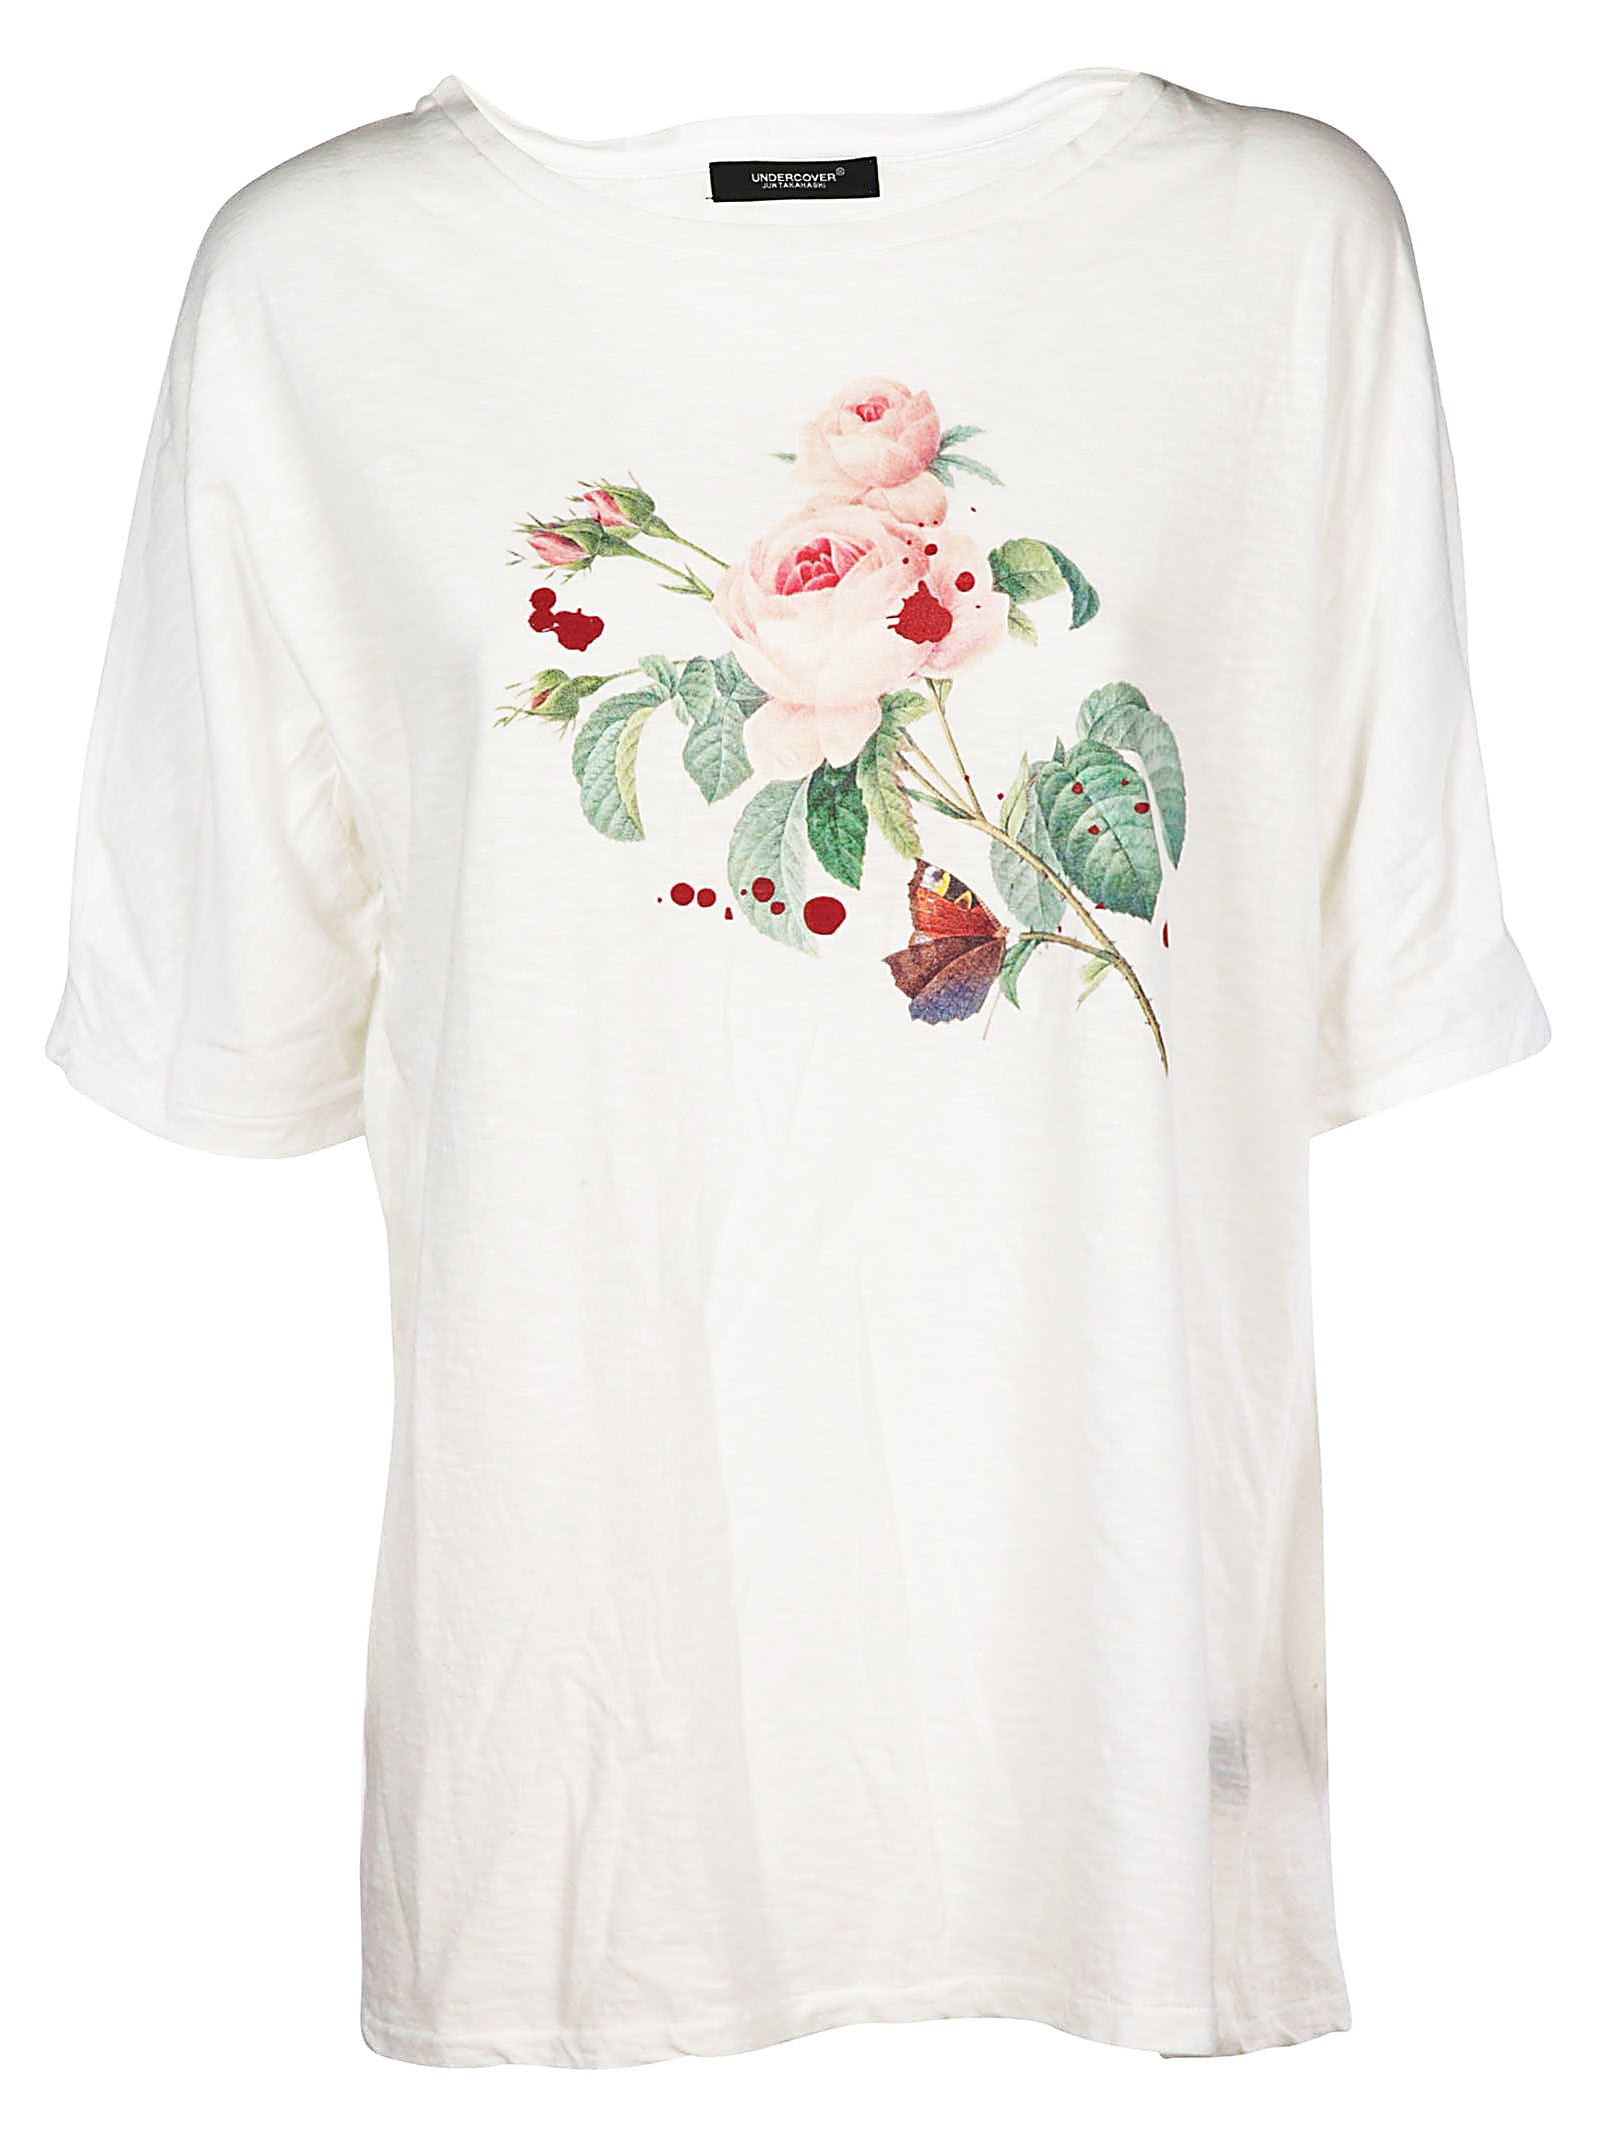 Undercover UNDERCOVER FLORAL PRINTED T-SHIRT